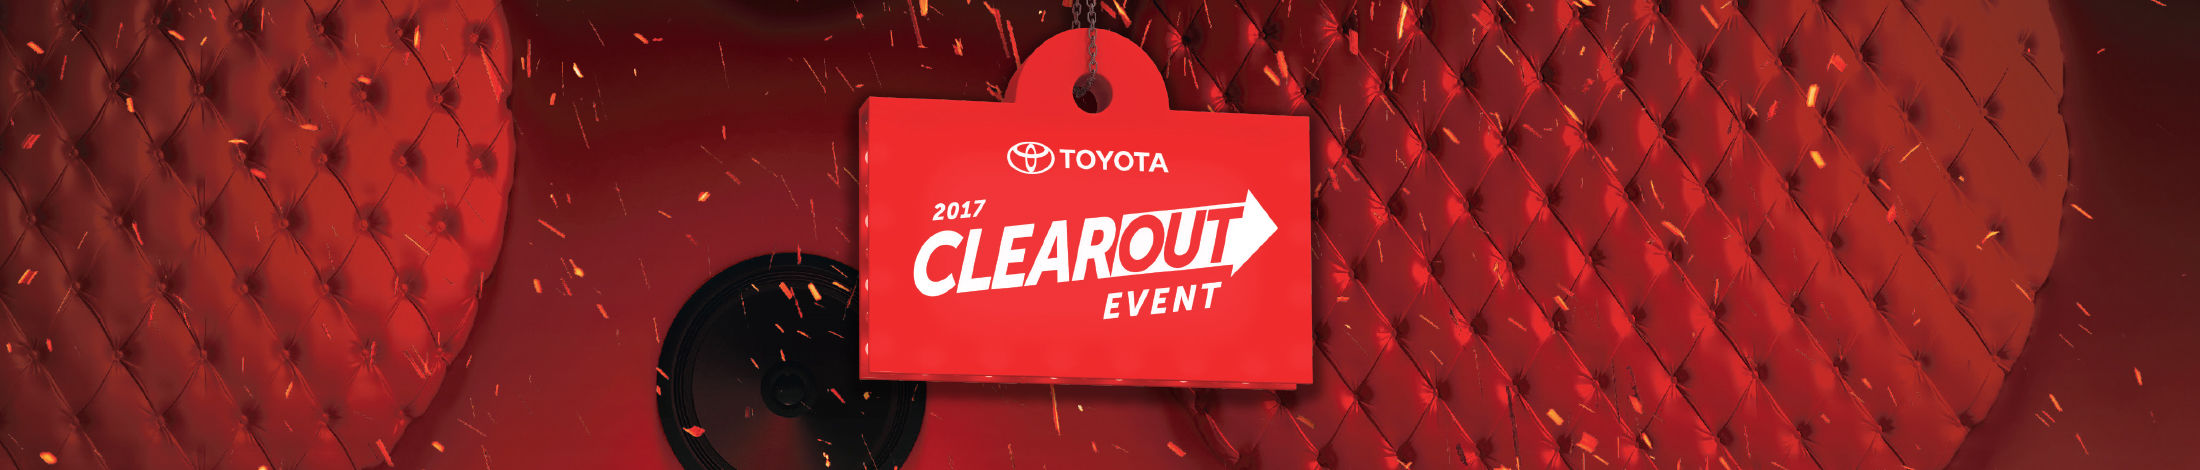 2017 Clearout Event